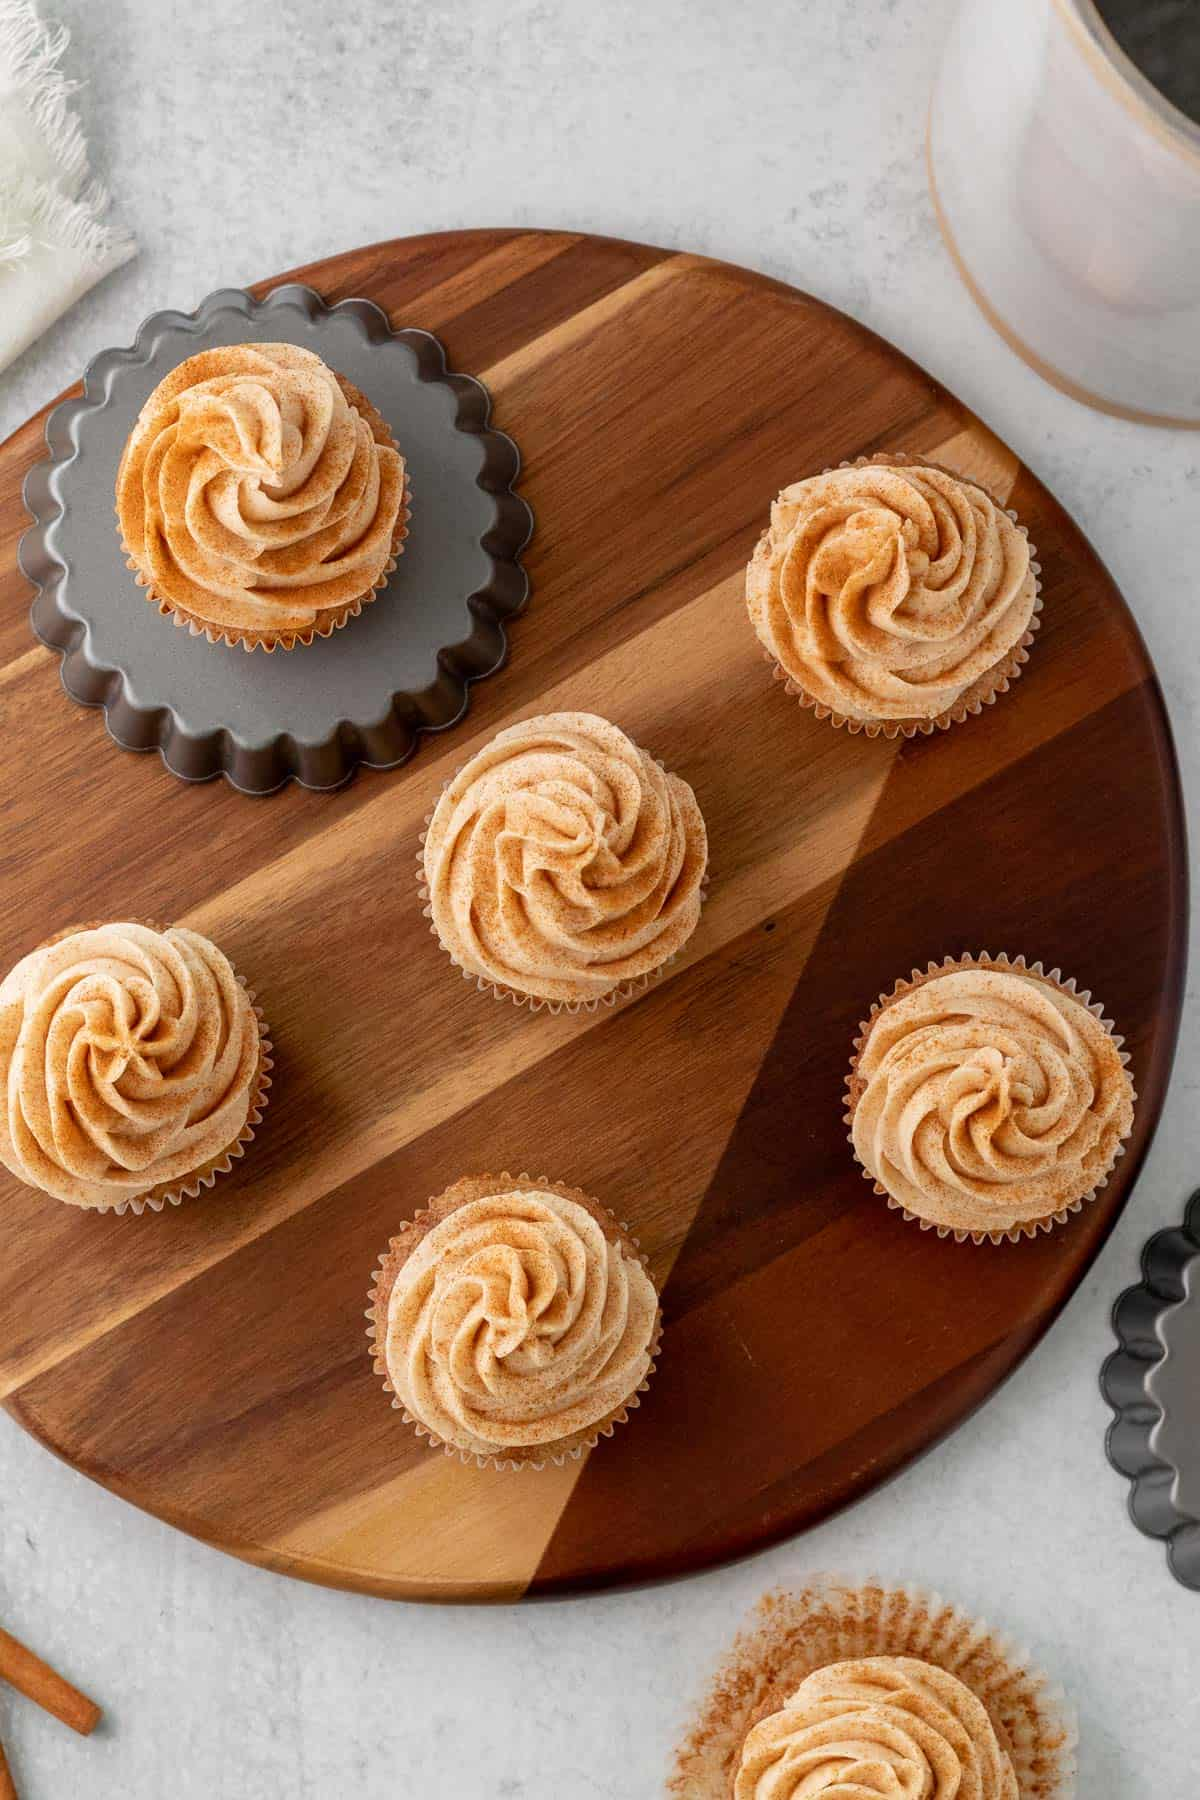 cinnamon cupcakes sitting on a round wood board